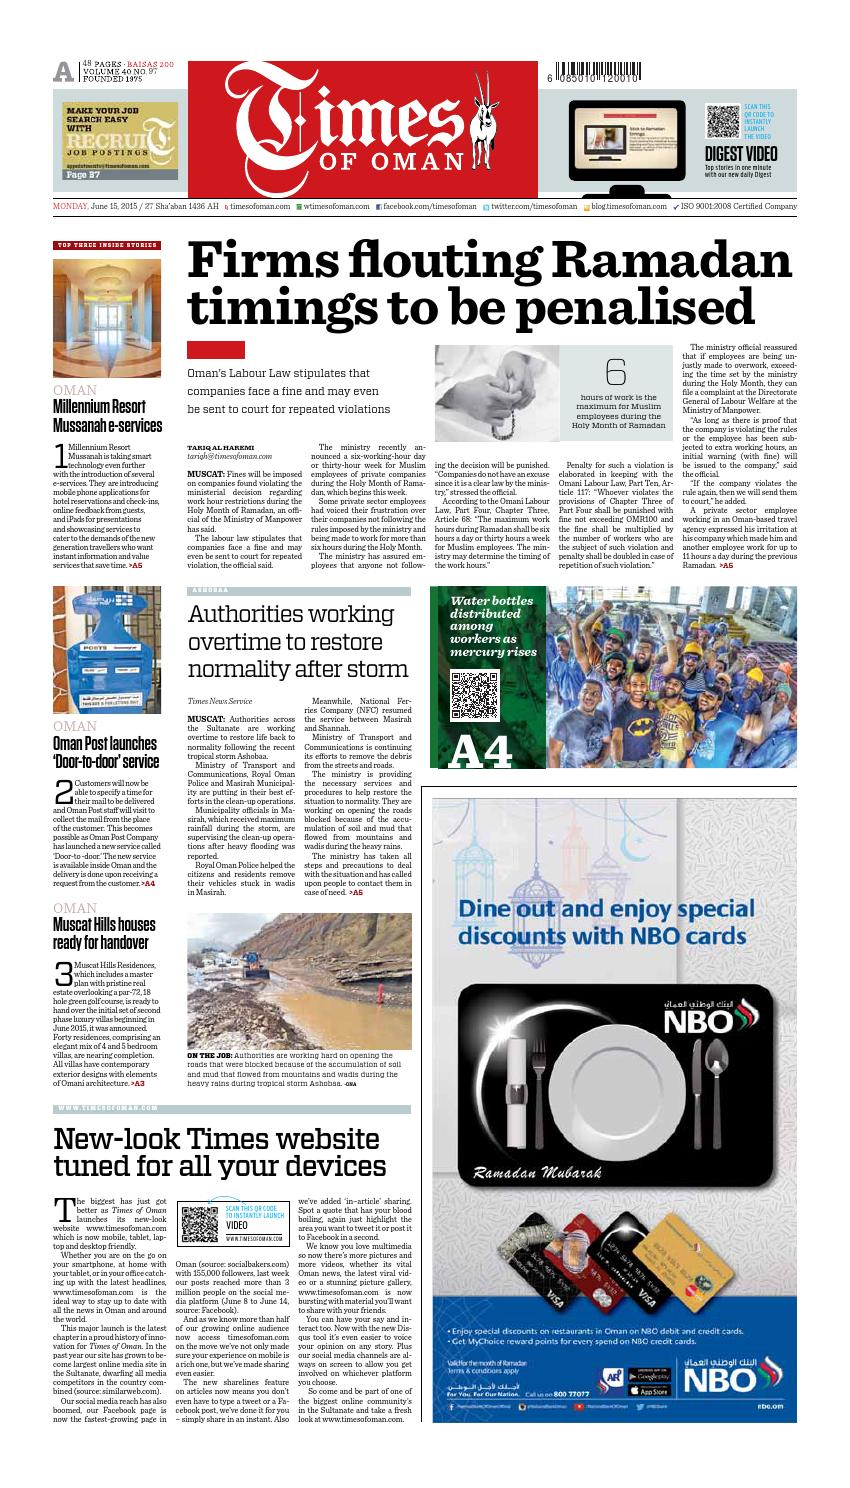 Times of Oman - June 15, 2015 by Muscat Media Group - issuu